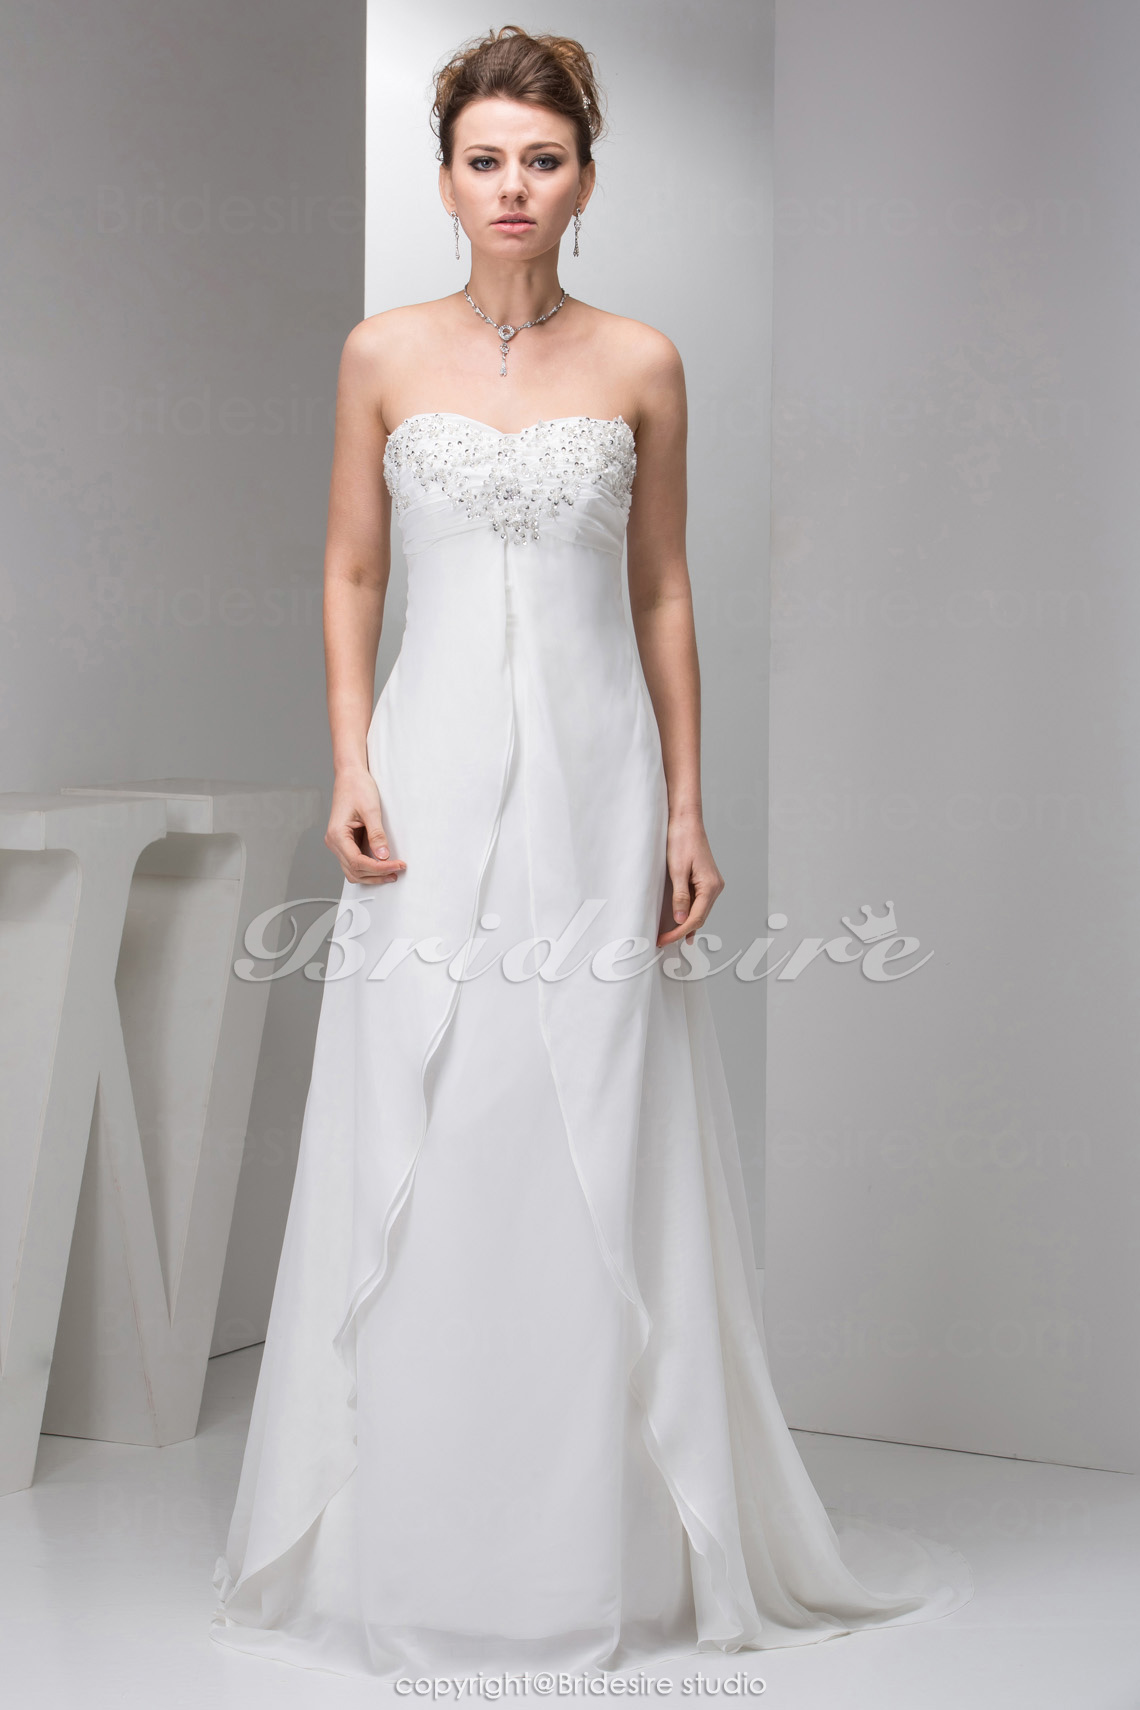 A-line Strapless Court Train Sleeveless Chiffon Wedding Dress